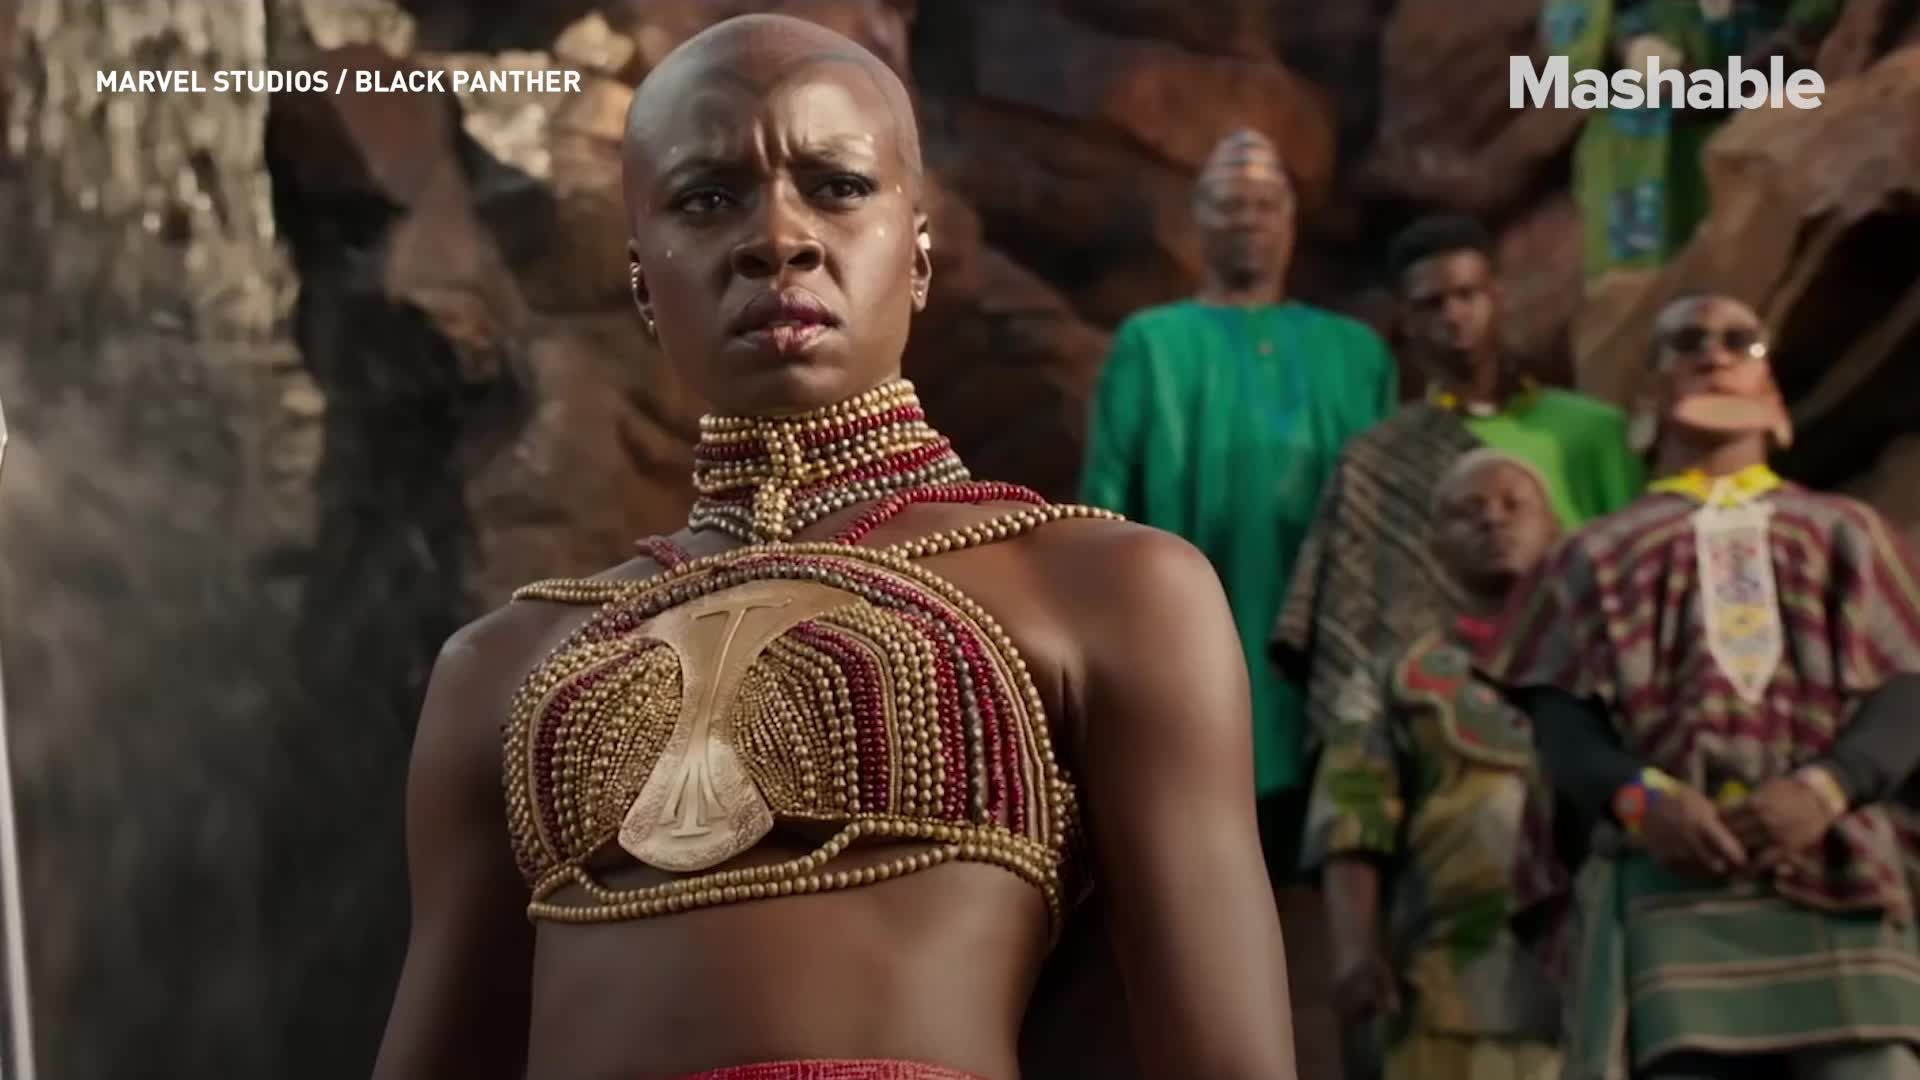 WATCH A deeper look at the Afrofuture costumes of Black Panther and the women who brought them to life